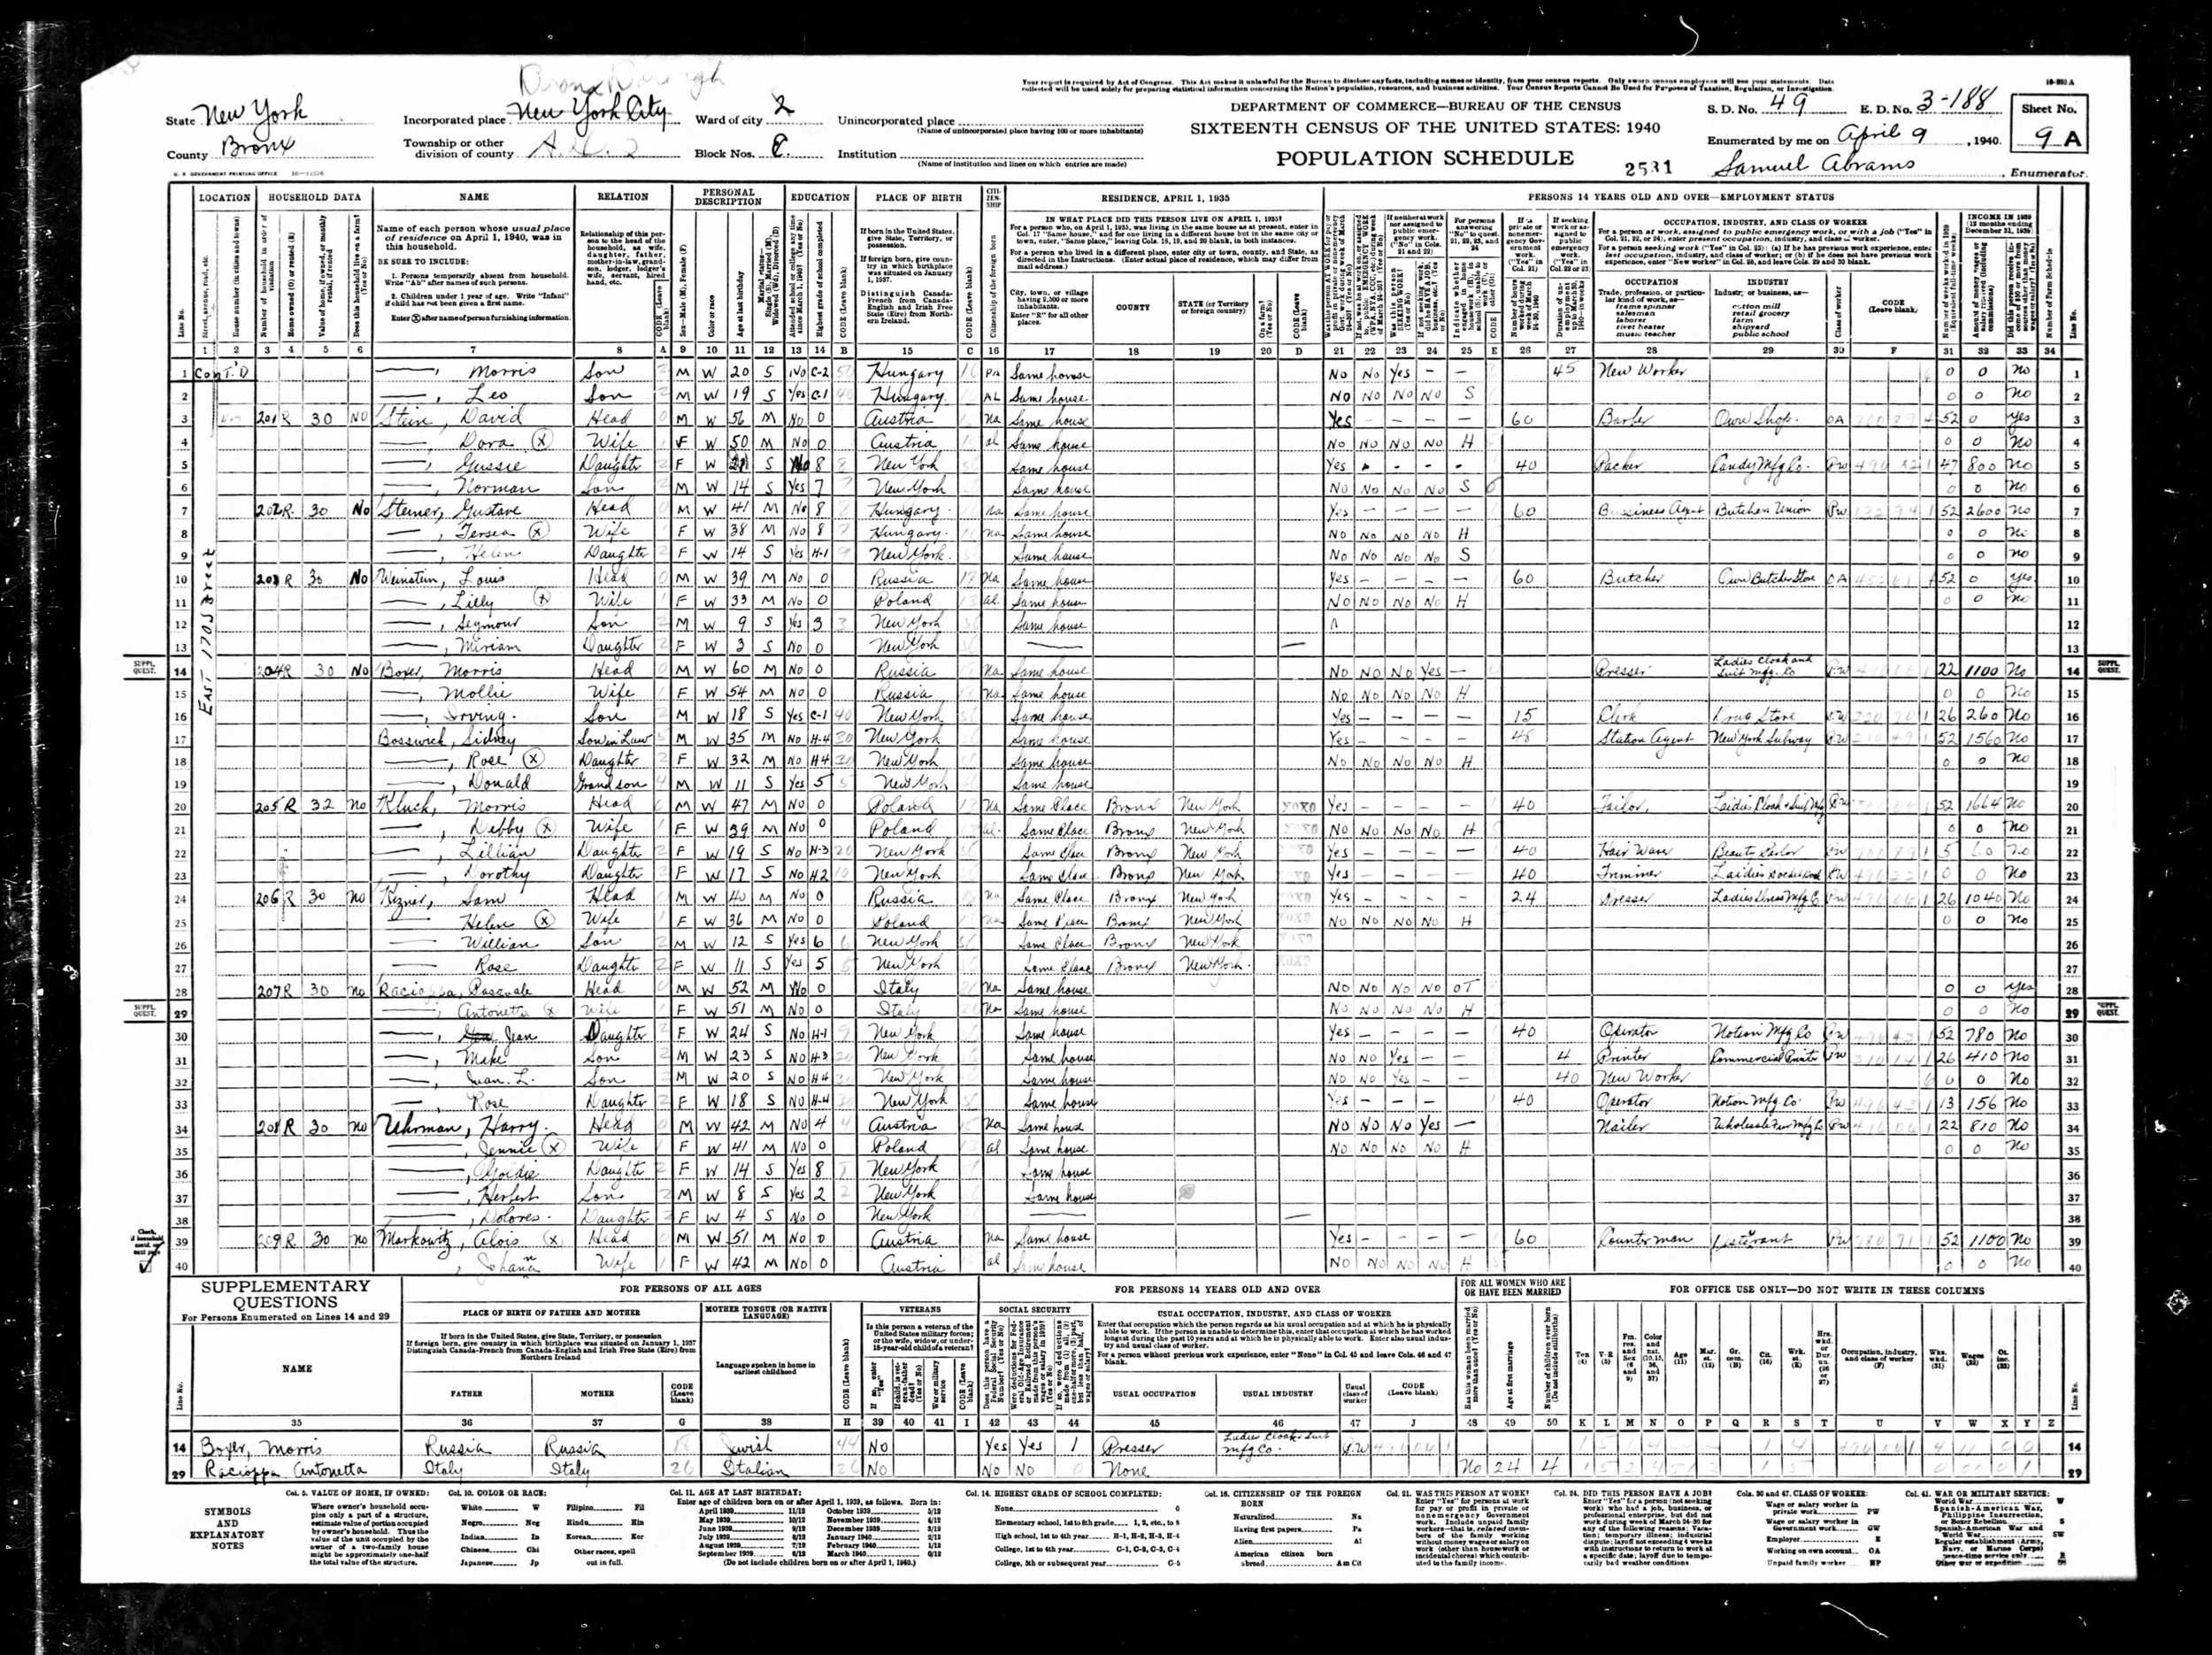 1940 us census.jpg